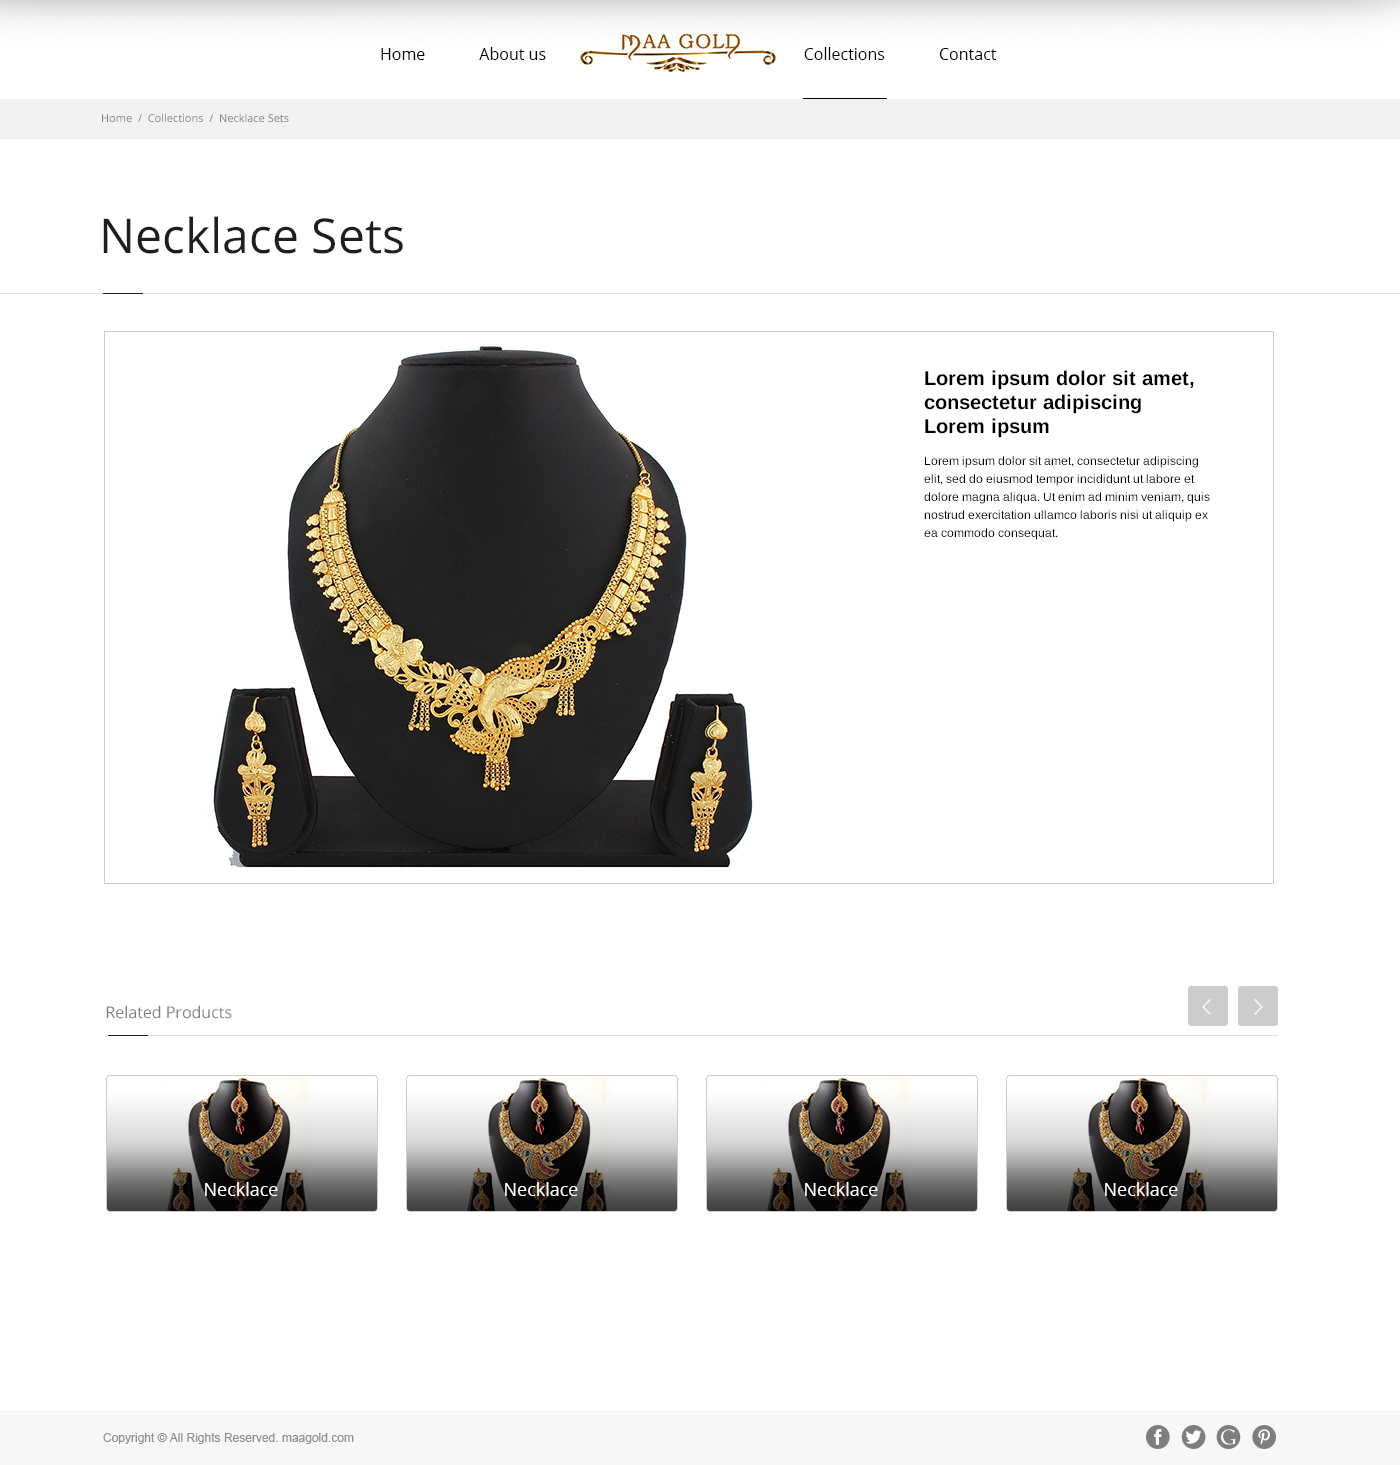 Website design for Maa Gold